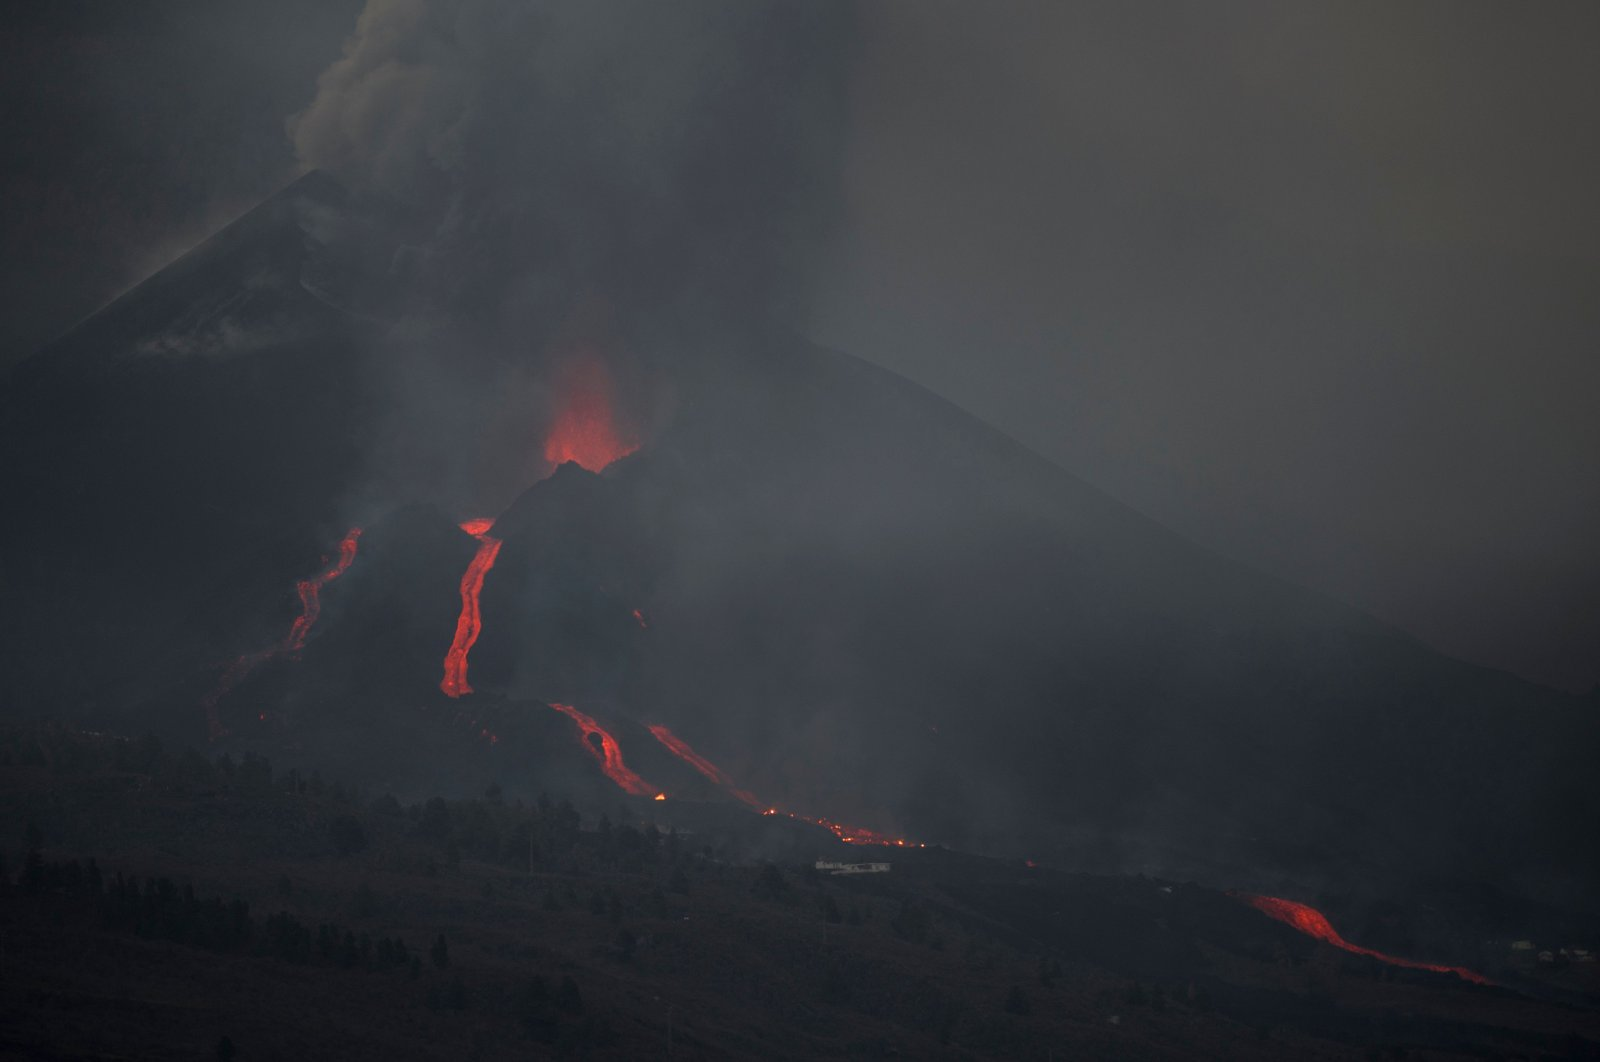 The Cumbre Vieja volcano, pictured from Los Llanos de Aridane, spews lava, ash and smoke on the Canary Island of La Palma, Spain, Oct. 9, 2021. (AFP Photo)